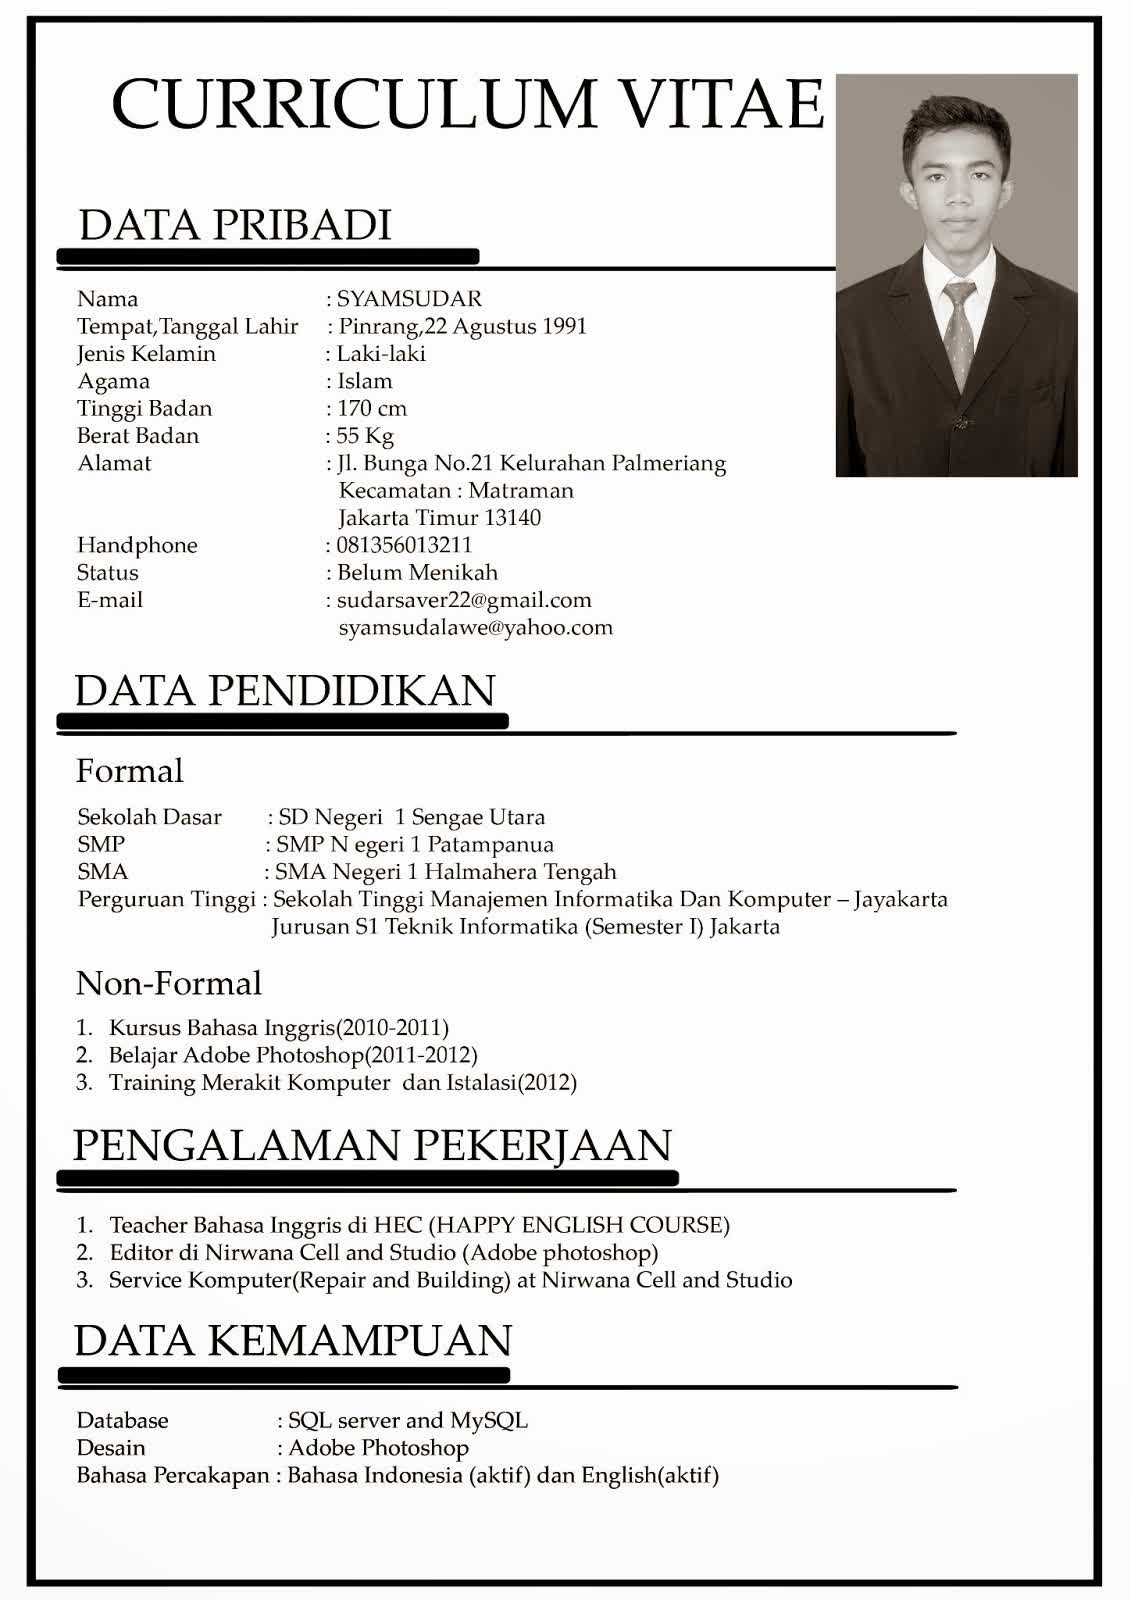 Contoh Singkat Curriculum Vitae Bahasa Indonesia  Info. Resume Creator Sample. Lebenslauf Vorlage Monster. Cover Letter Template Quora. Cover Letter For Customer Service Job Example. Xfinity Letterhead. Resume Gig. Objective For Resume Template. Resume Writing Services Engineering